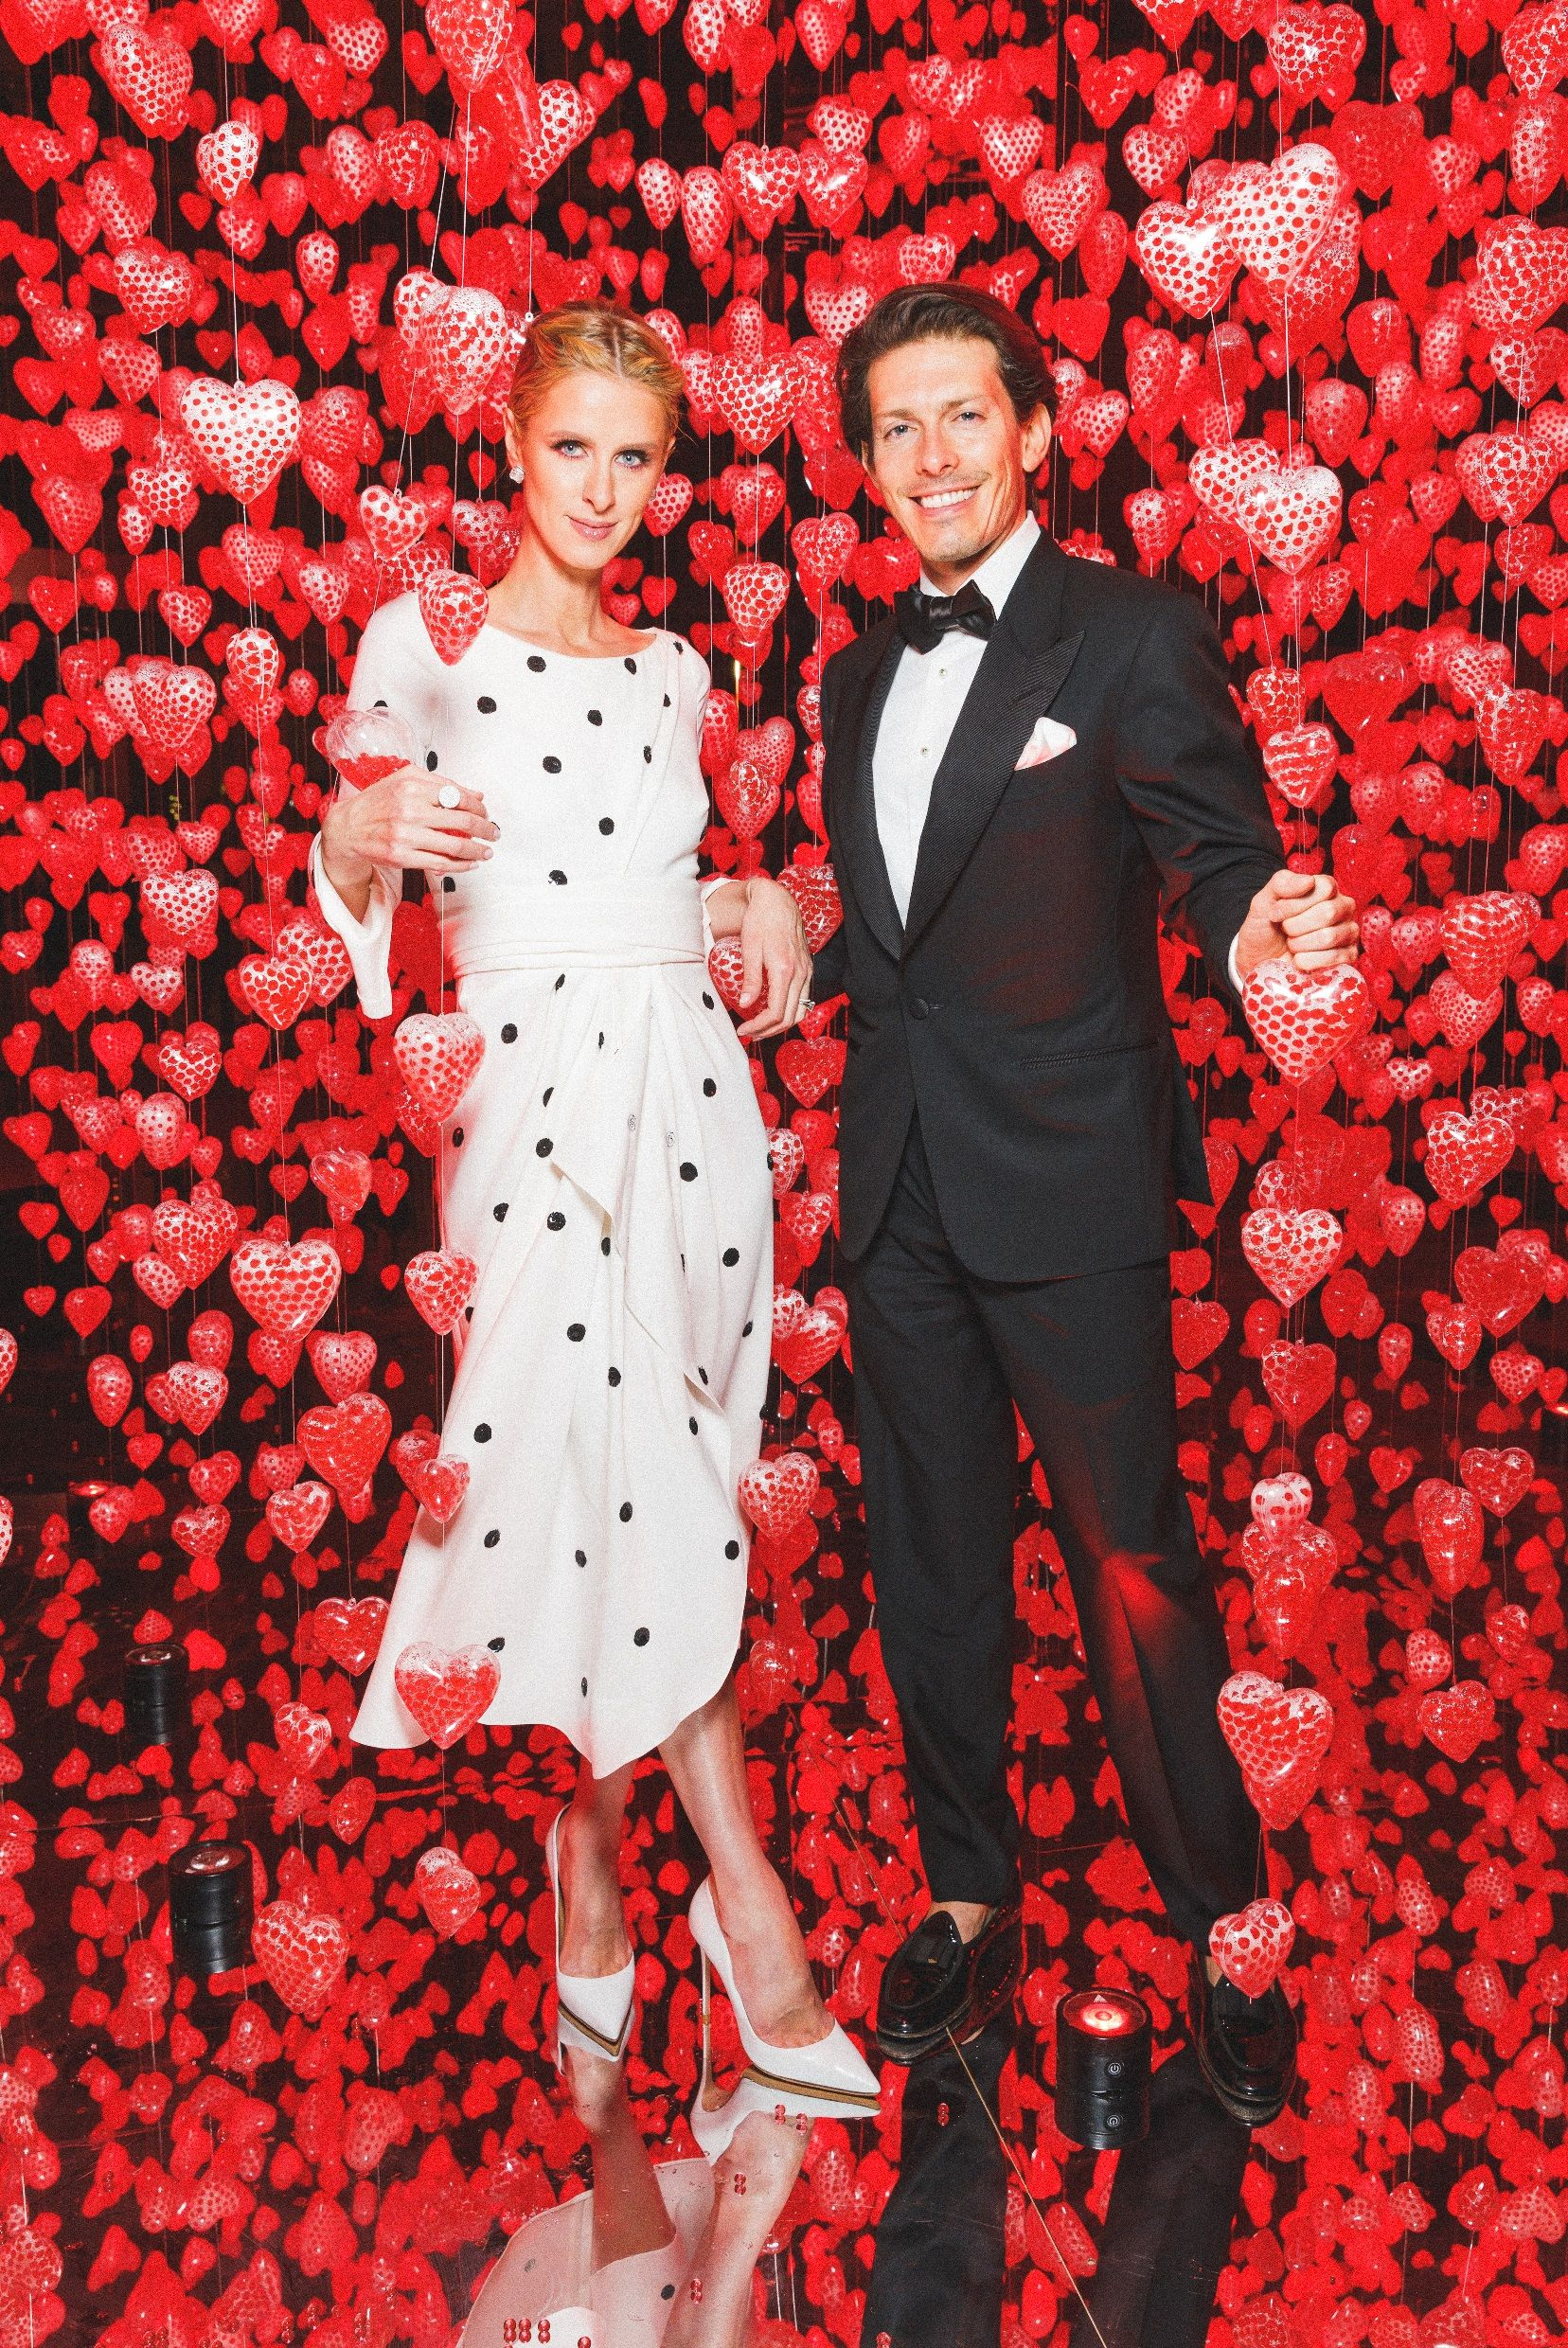 Nicky Hilton Rothschild and Edgardo Osorio Nicky Hilton Rothschild and Edgardo Osorio attend Love Ball Arabia, hosted by the Museum of Islamic Art, in Doha, Qatar on March 29.